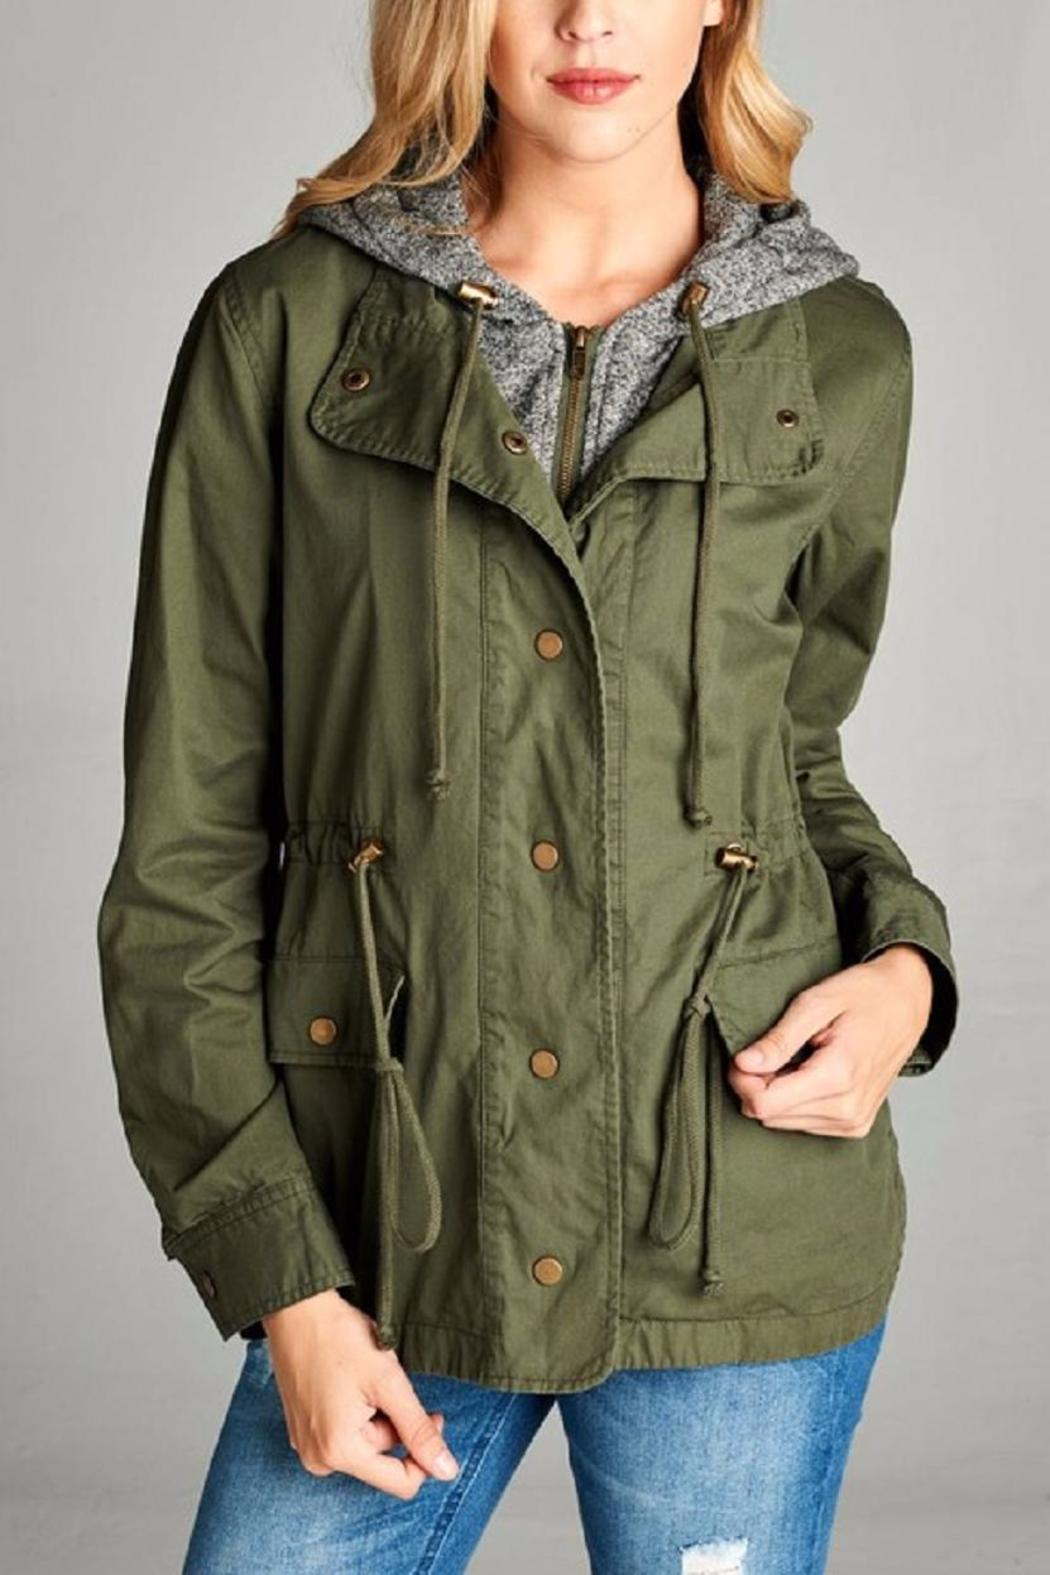 fe27c3262f46 Active Basic Utility Jacket from California by Casual Island ...